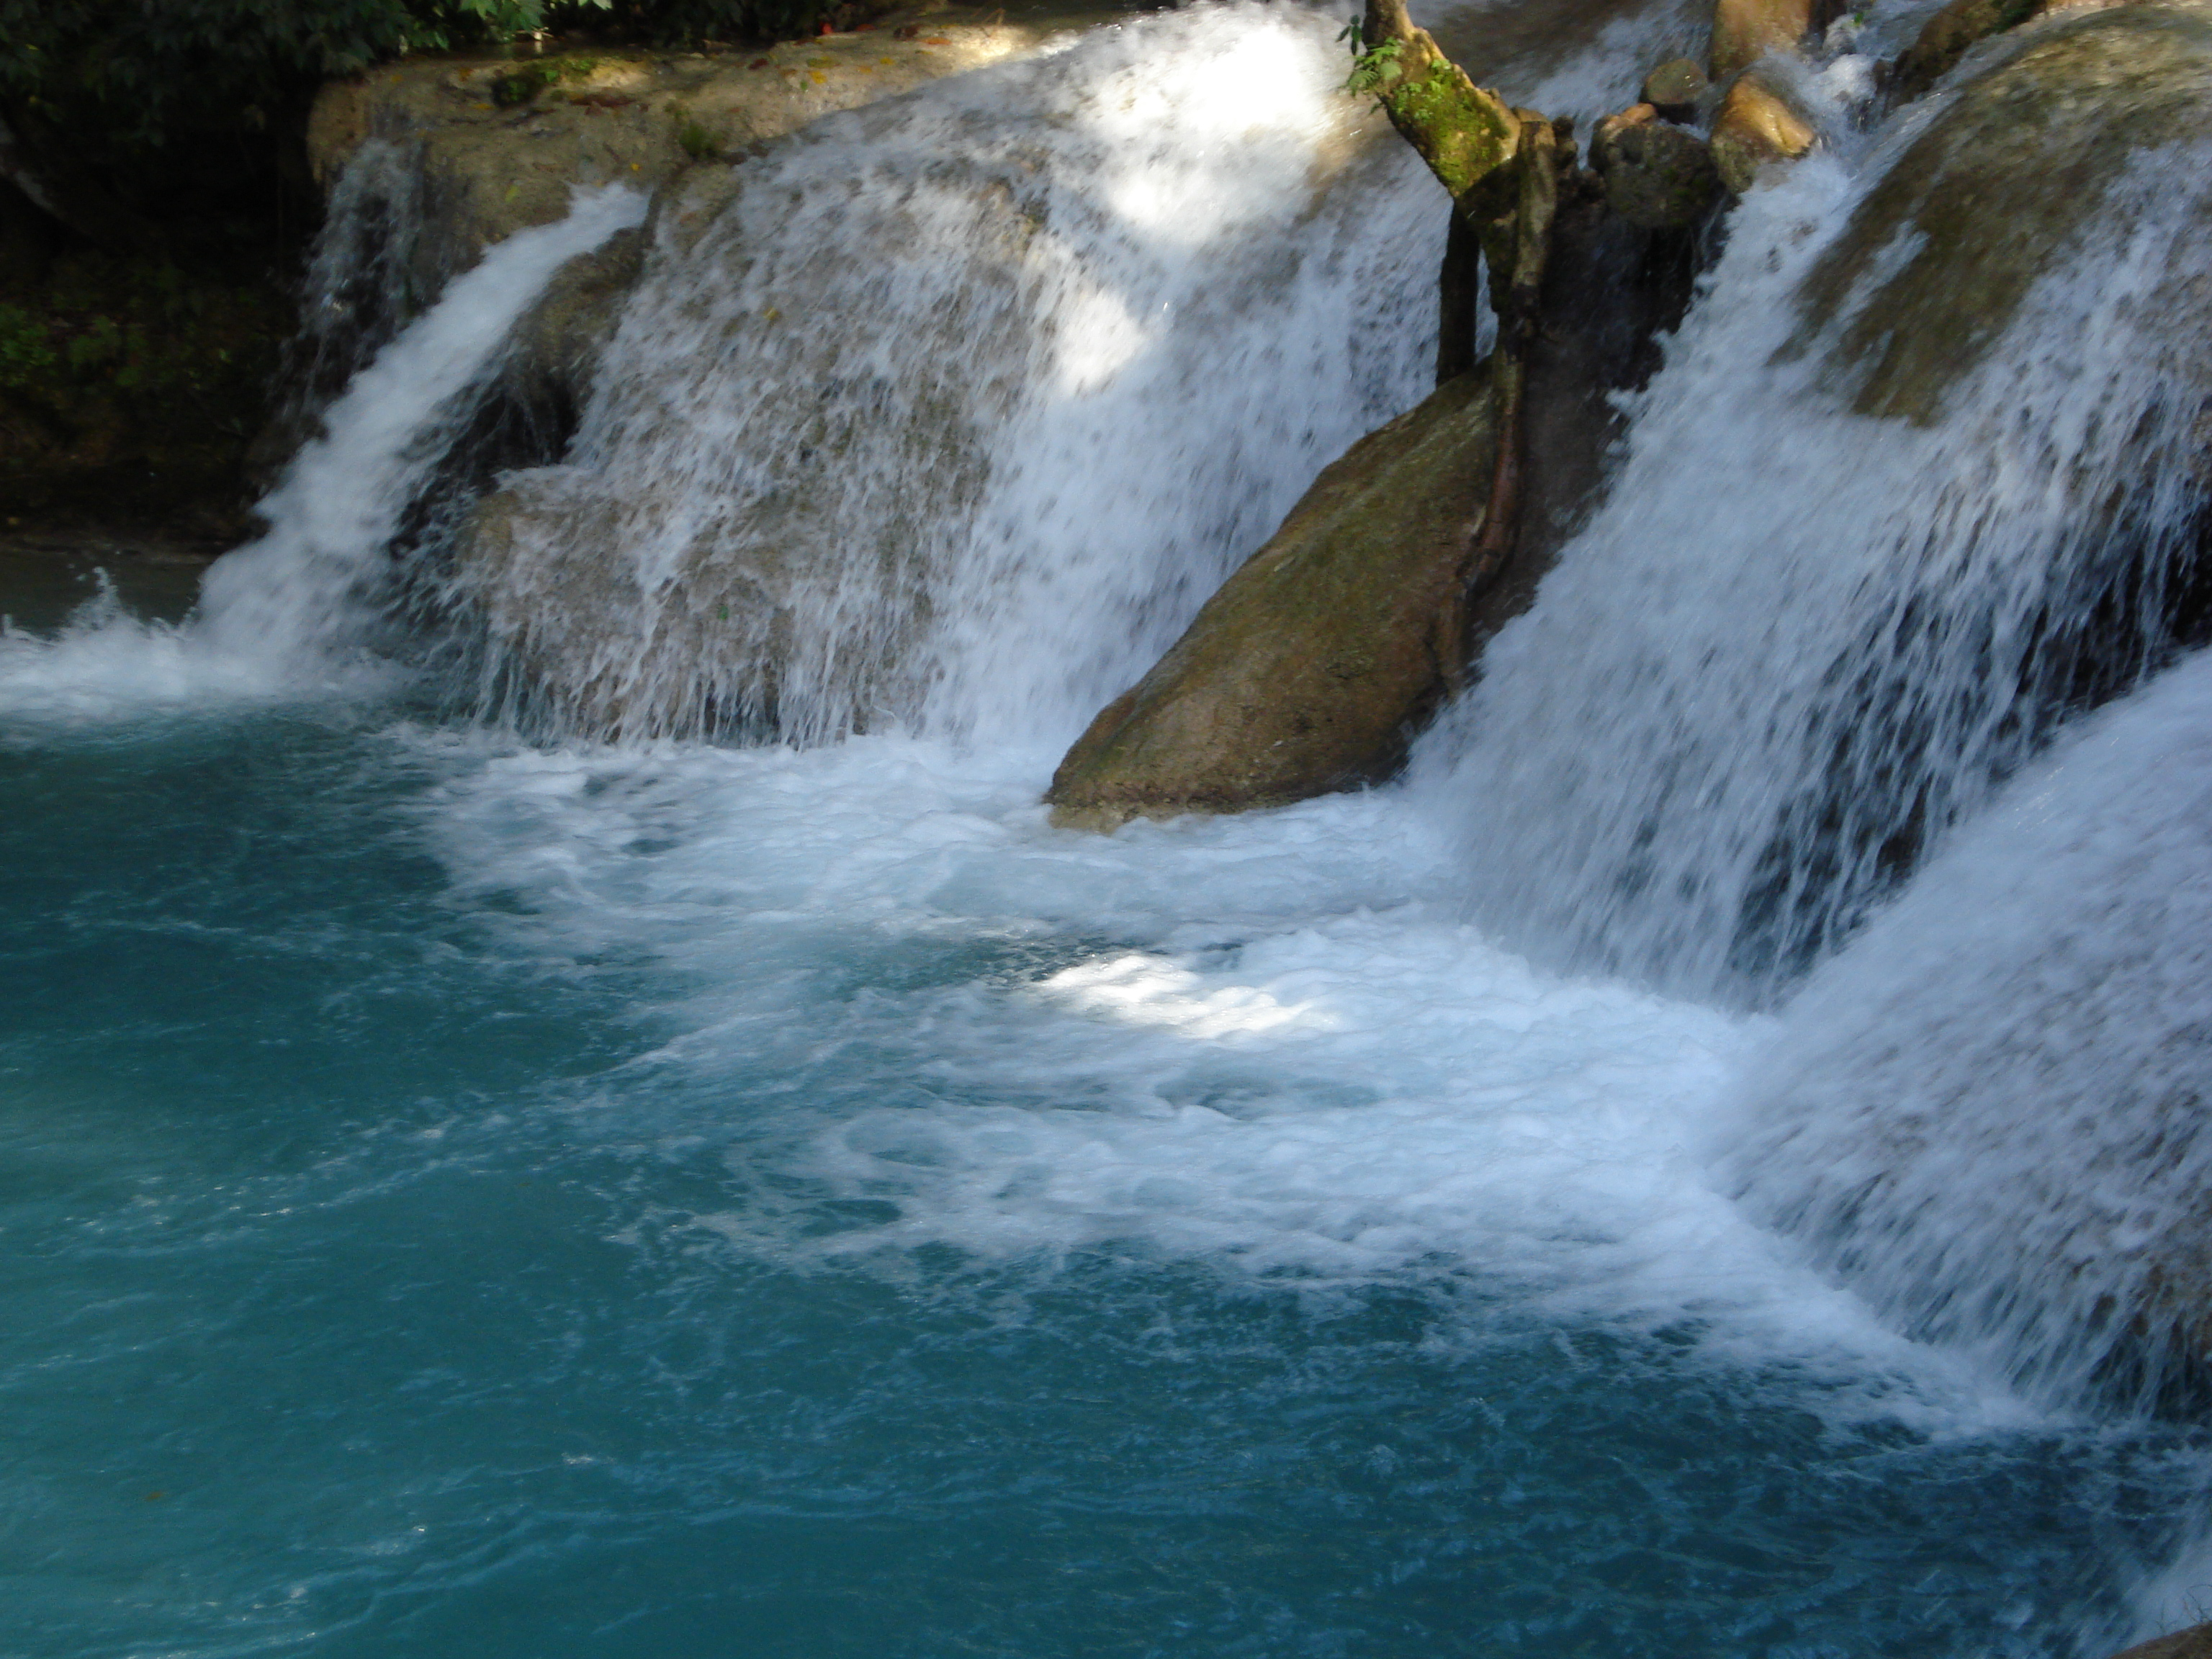 jamaica the land of wood and water